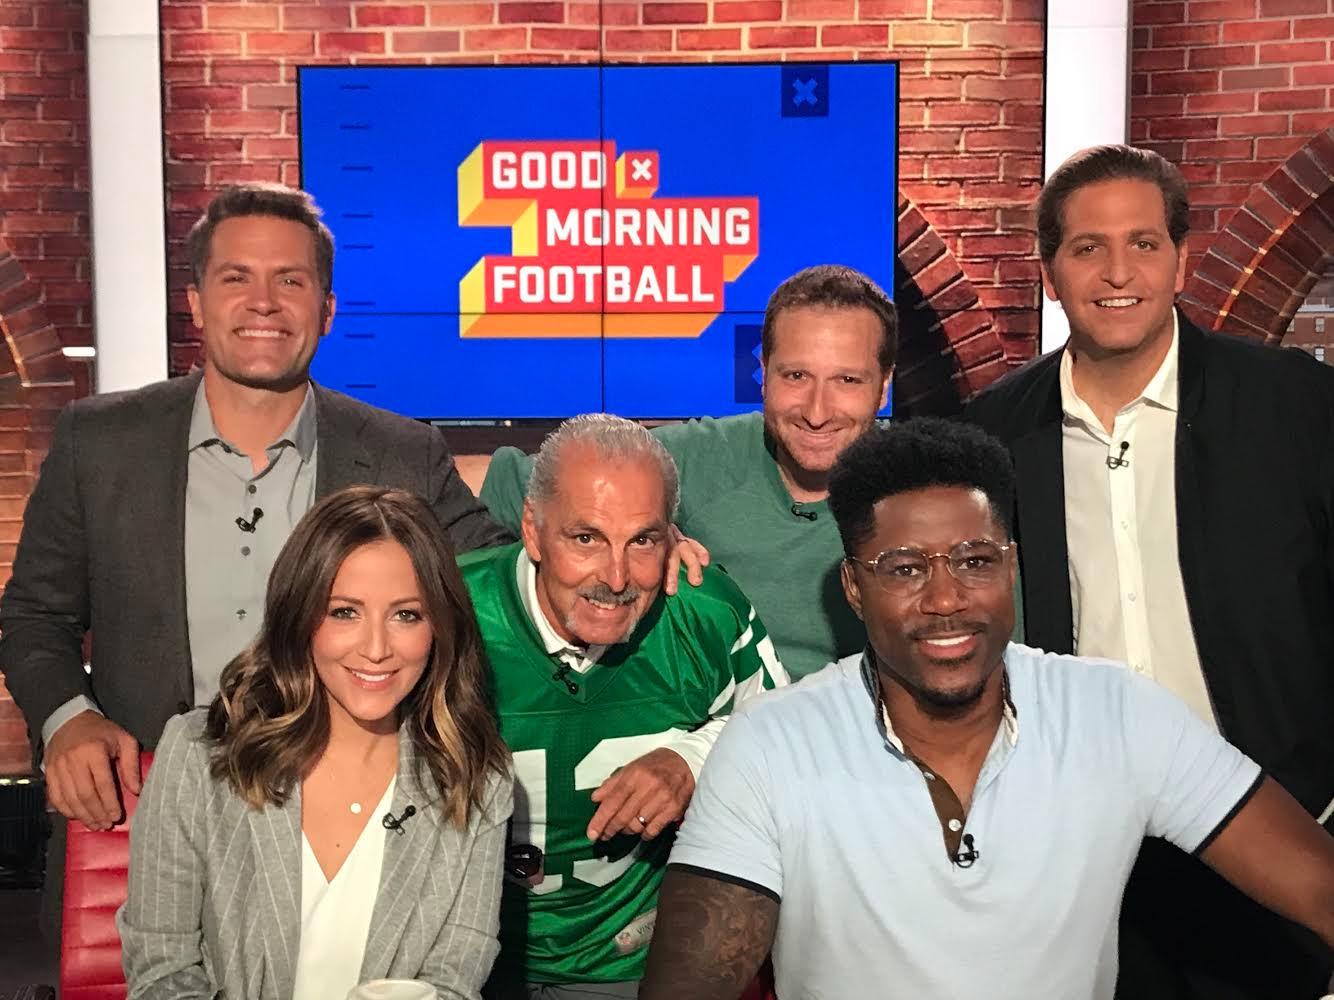 Joe And Evan Appear On 'Good Morning Football'